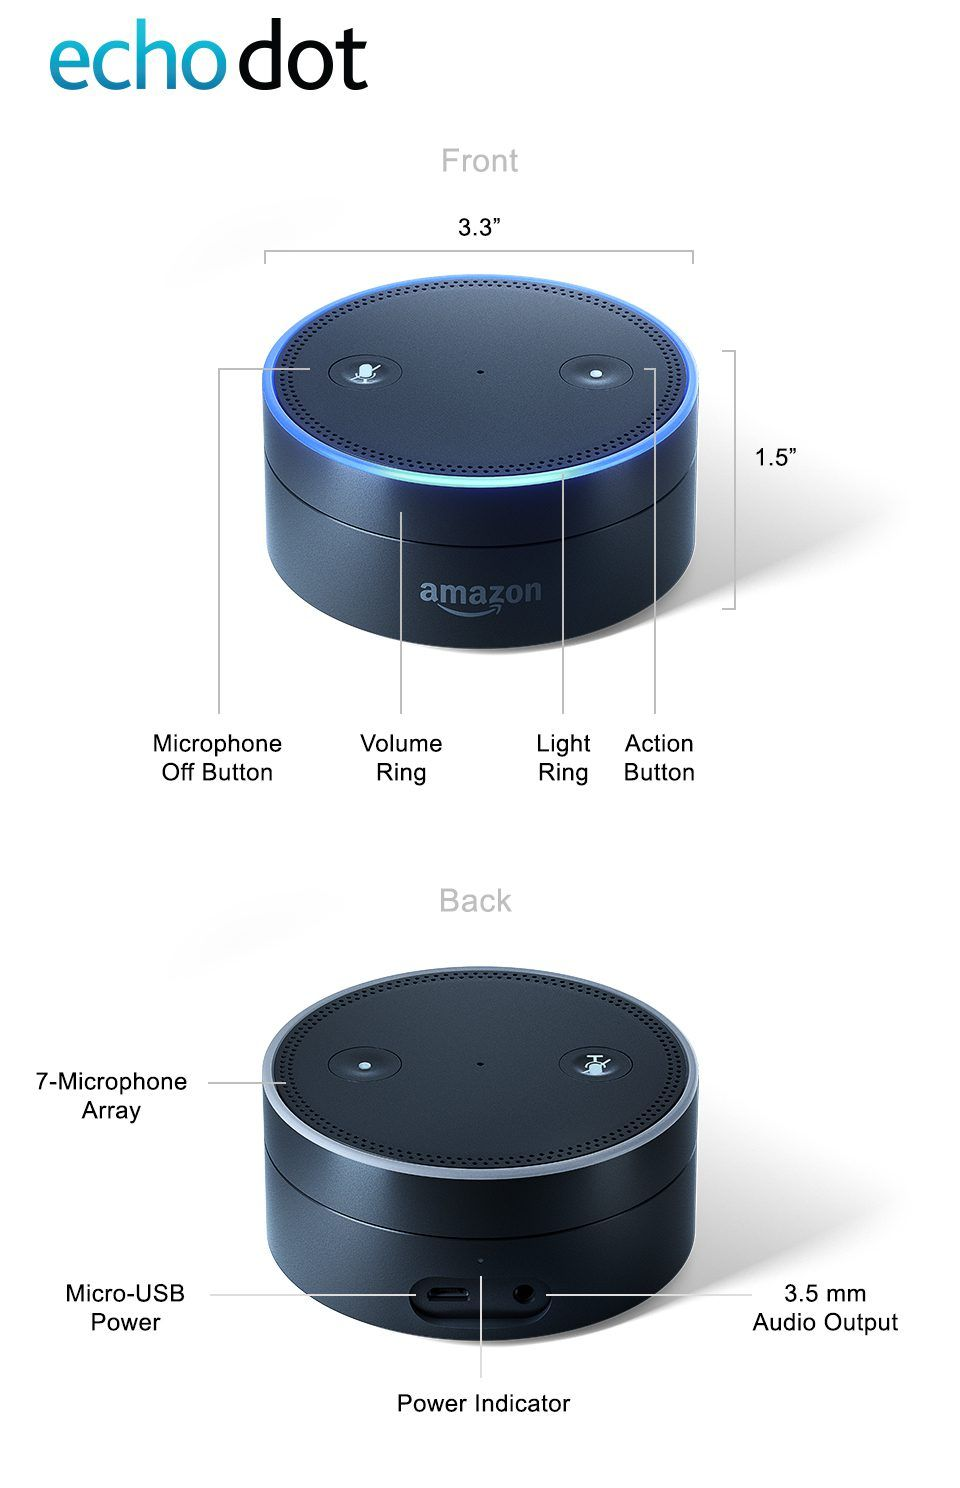 Amazon Echo Dot Review Smaller And Only 50 But Also Versatile A No Brainer Gift For Prime Users Amazon Echo Amazon Alexa Skills Echo Dot